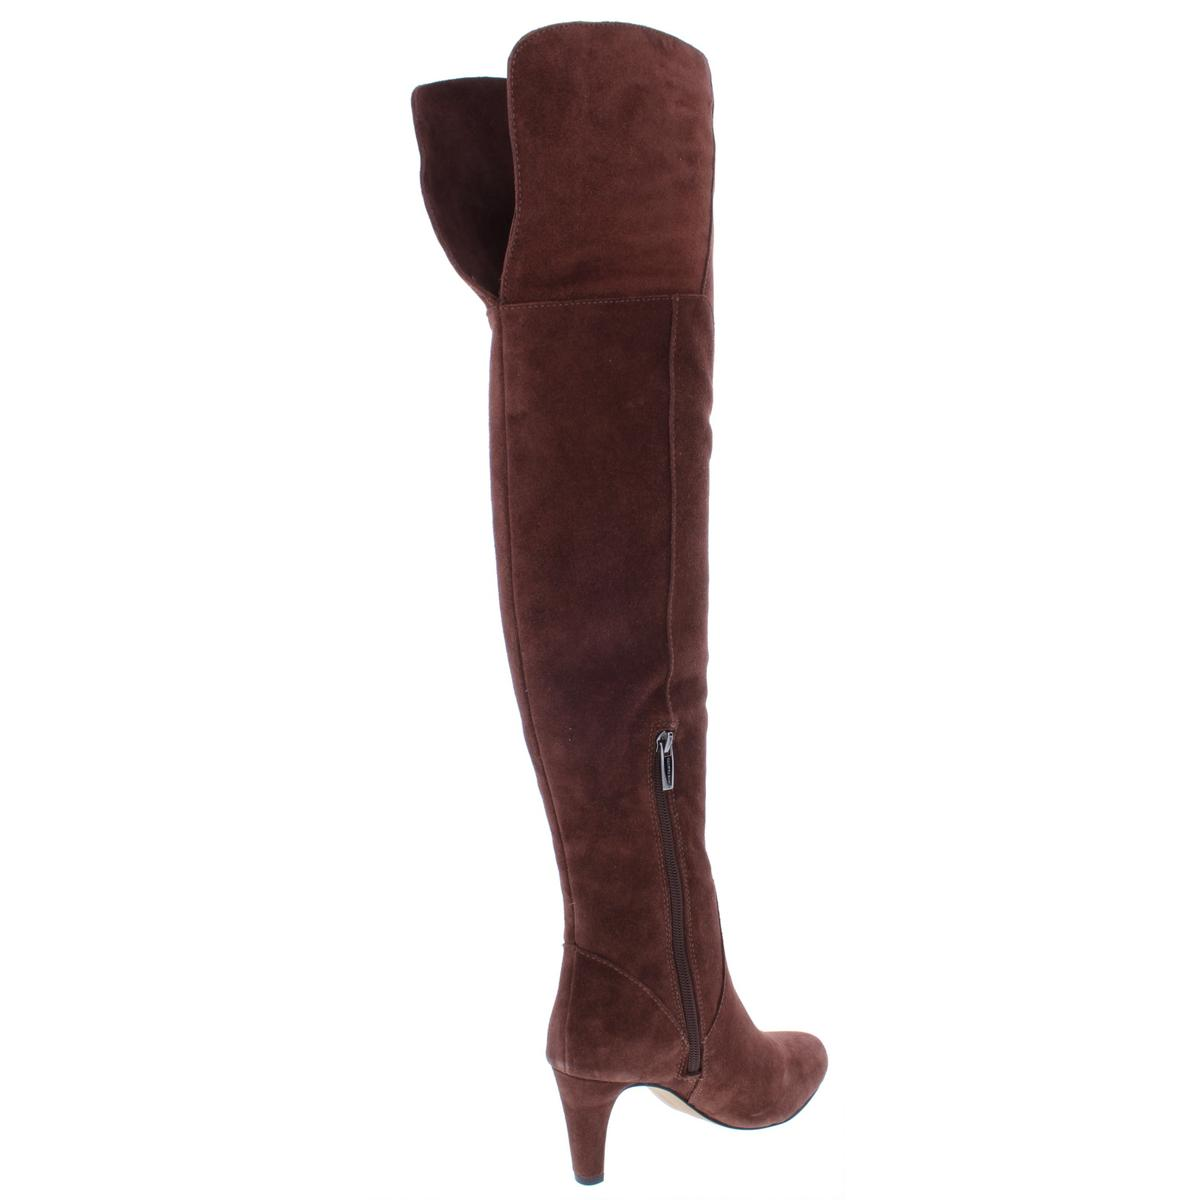 ffac69dc043 Vince Camuto Womens Armaceli Suede Round Toe Over-The-Knee Boots ...